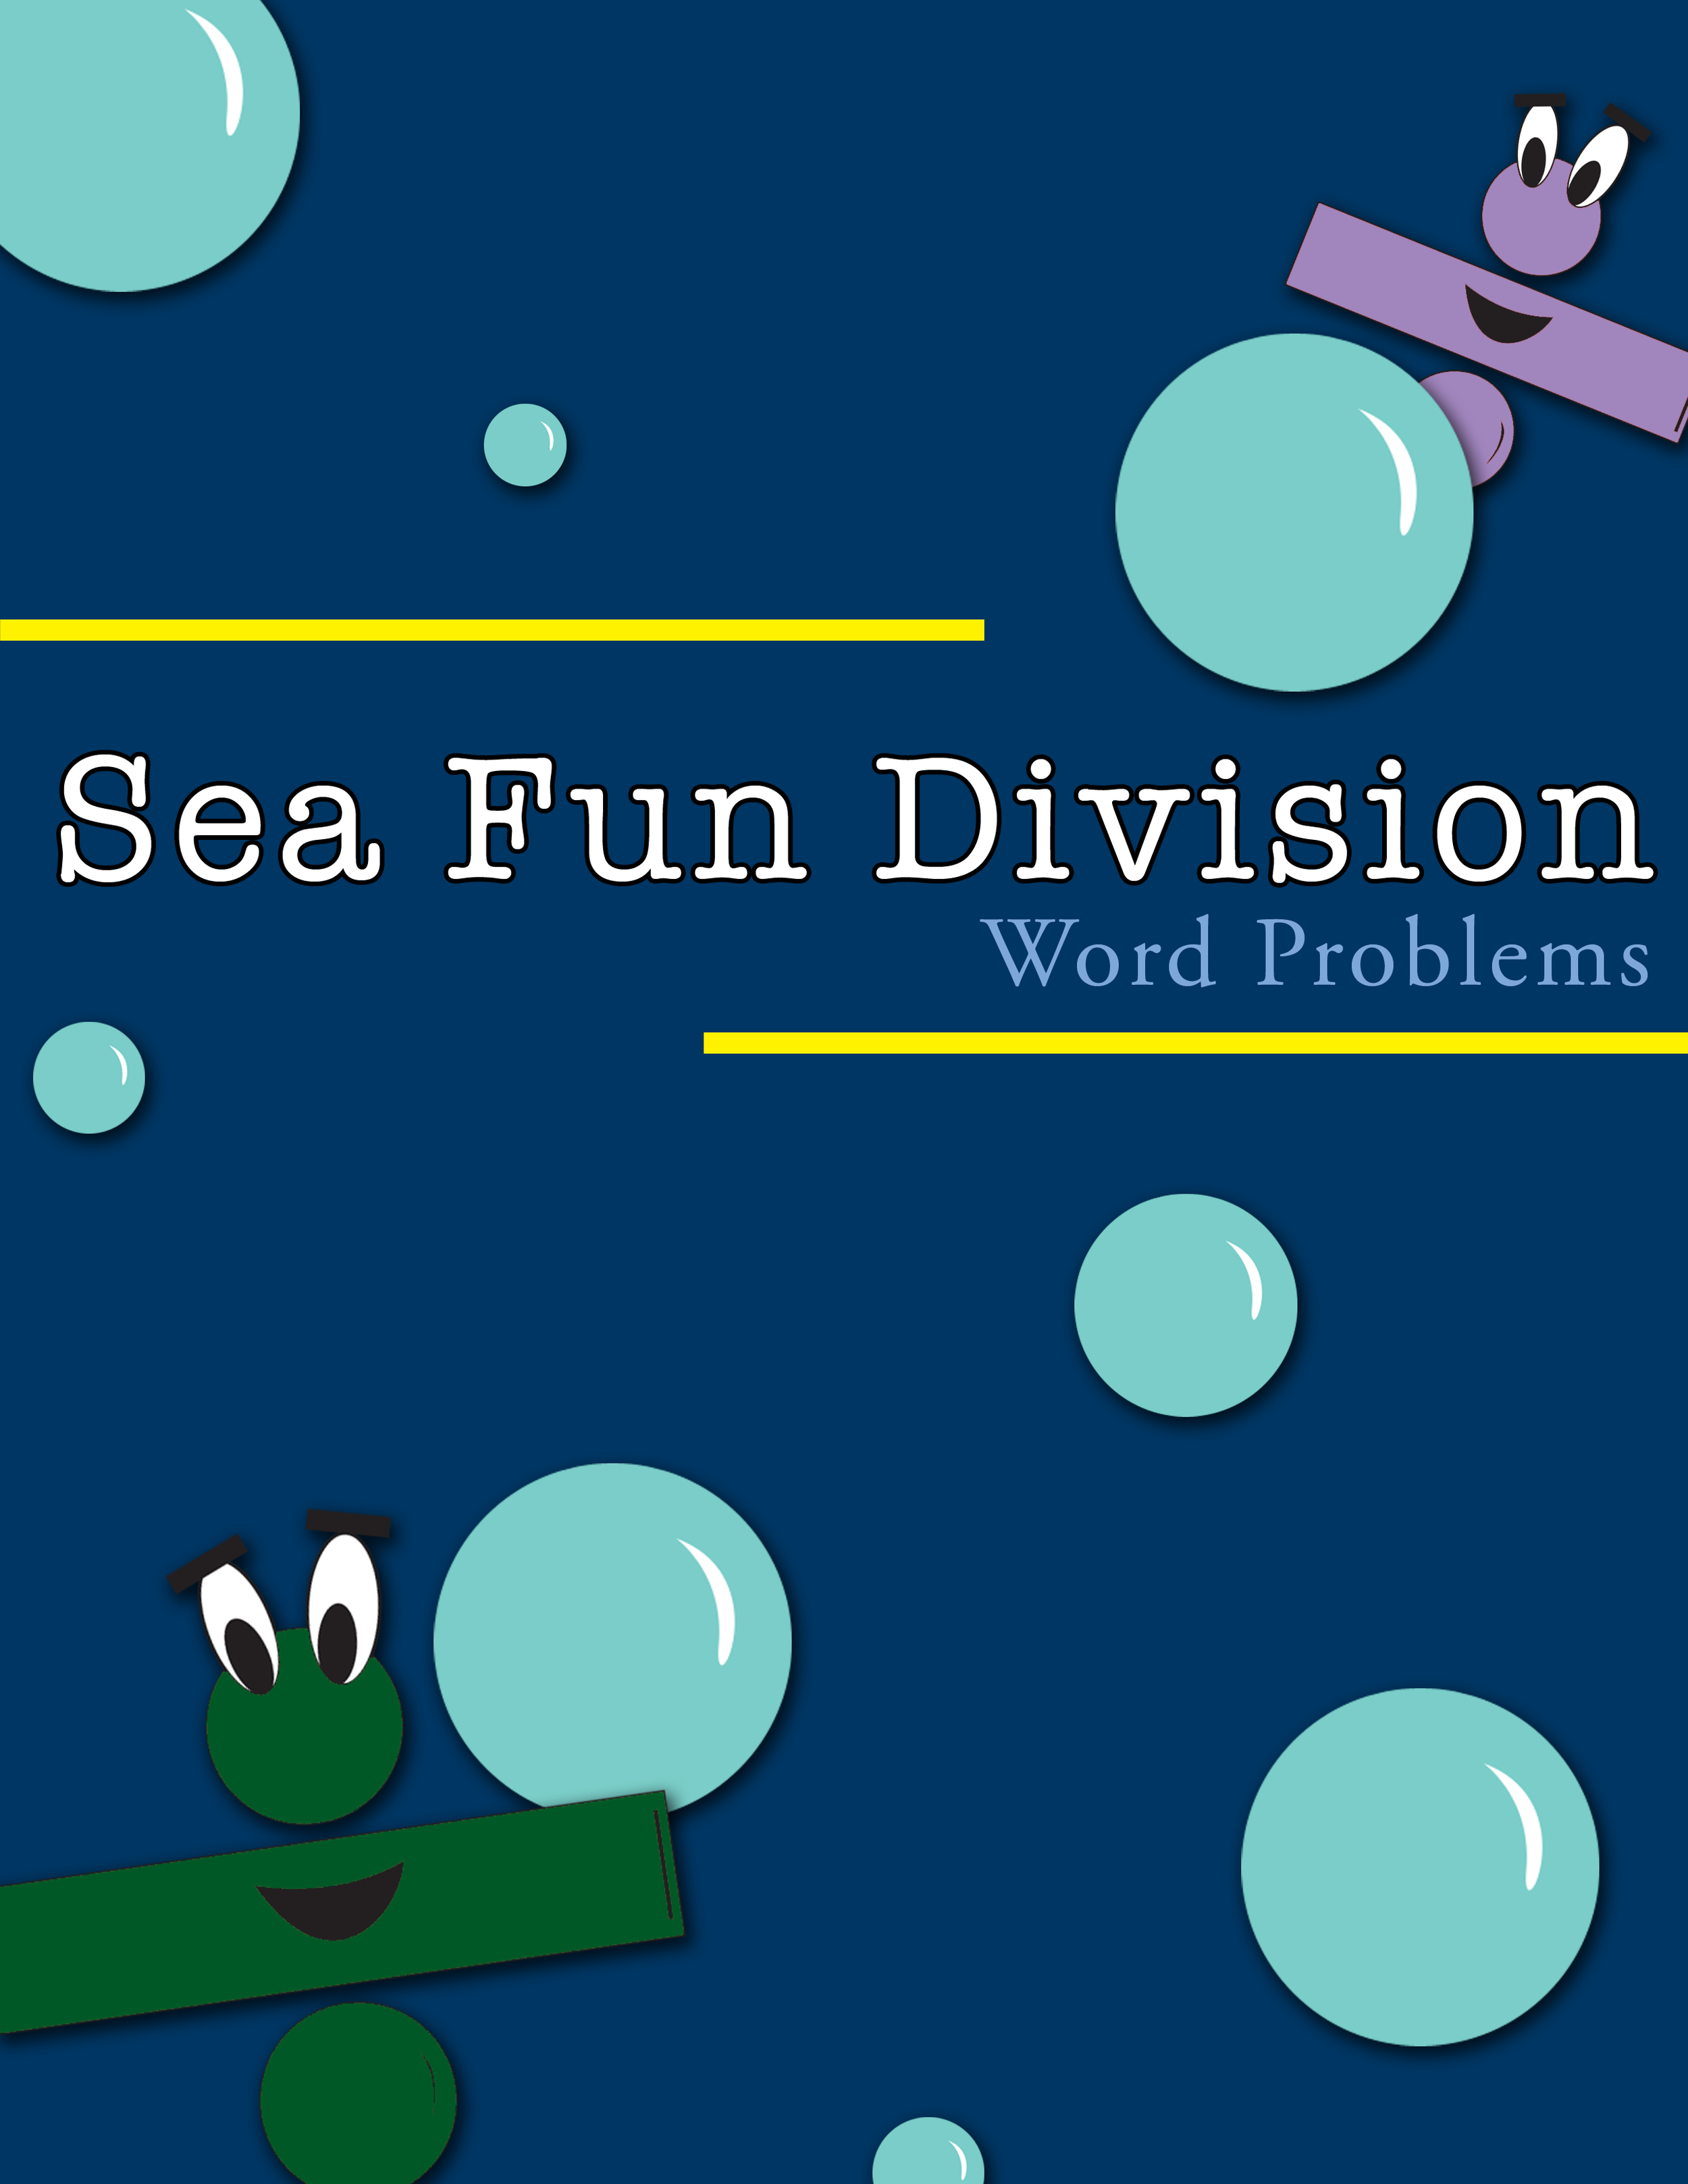 Sea Division Word Problems